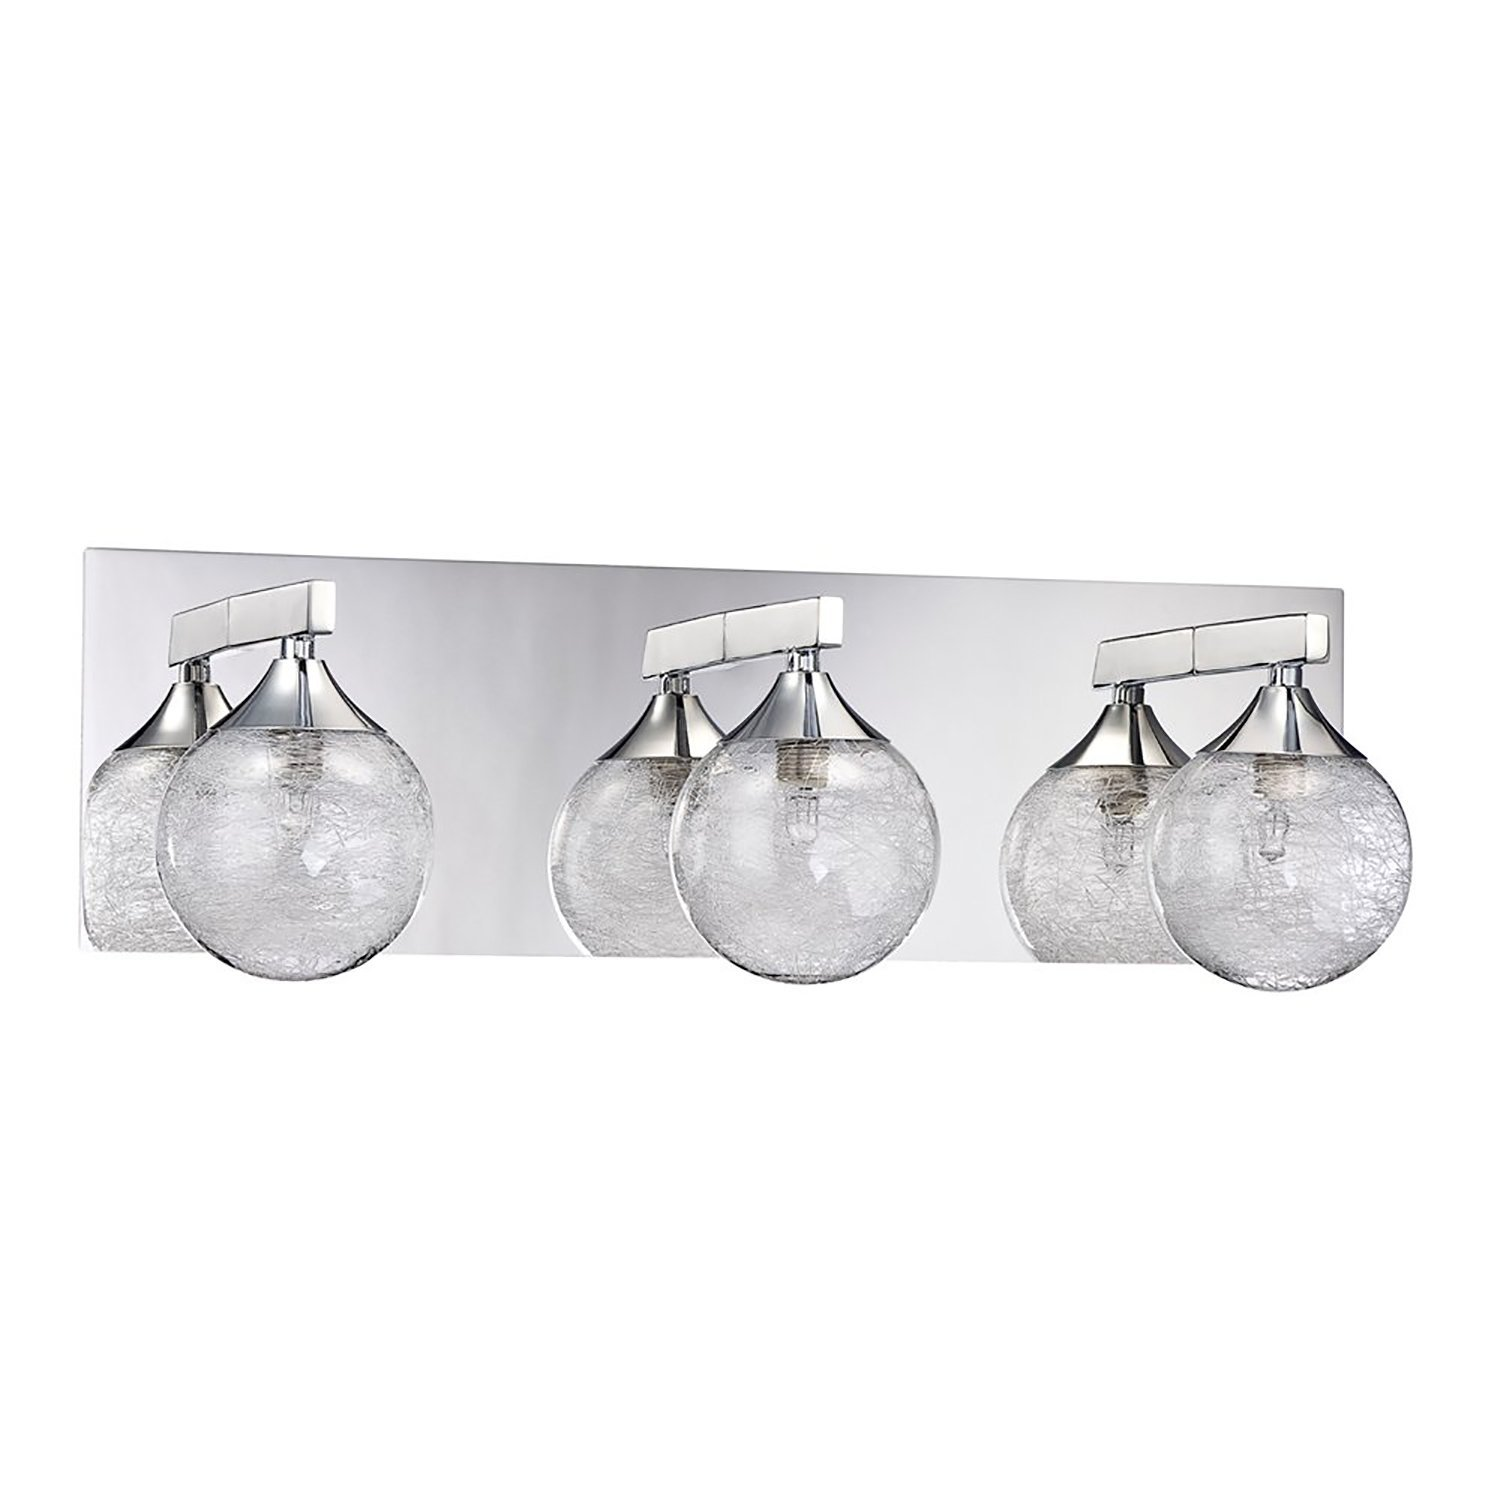 kendal lighting vf4100 3l ch fybra 3 light vanity fixture chrome